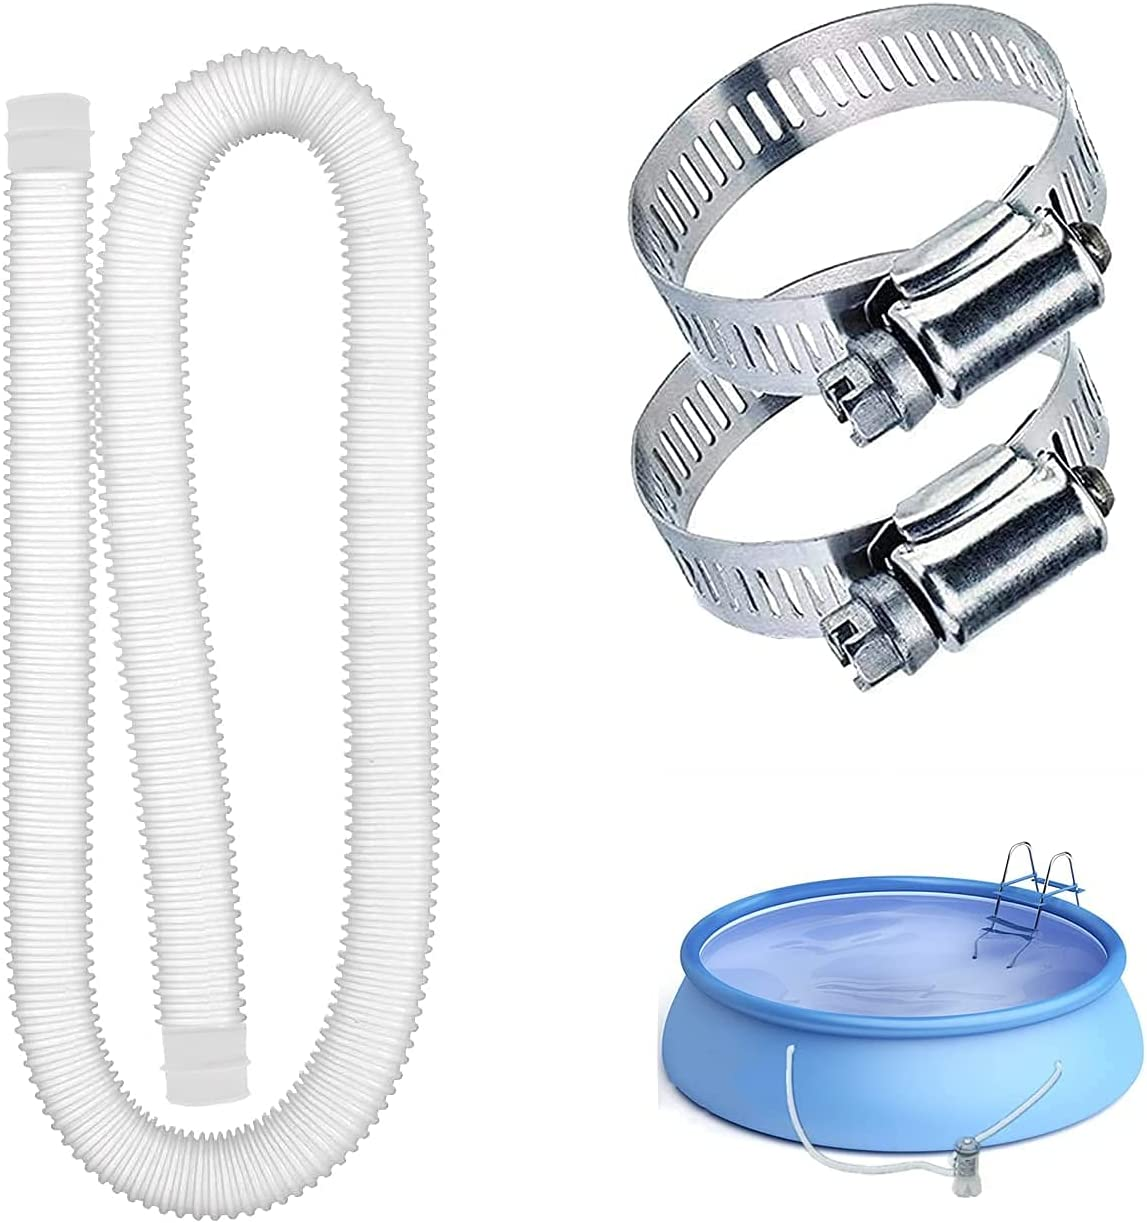 Pool Bargain Replacement Hose Brand new 1.25